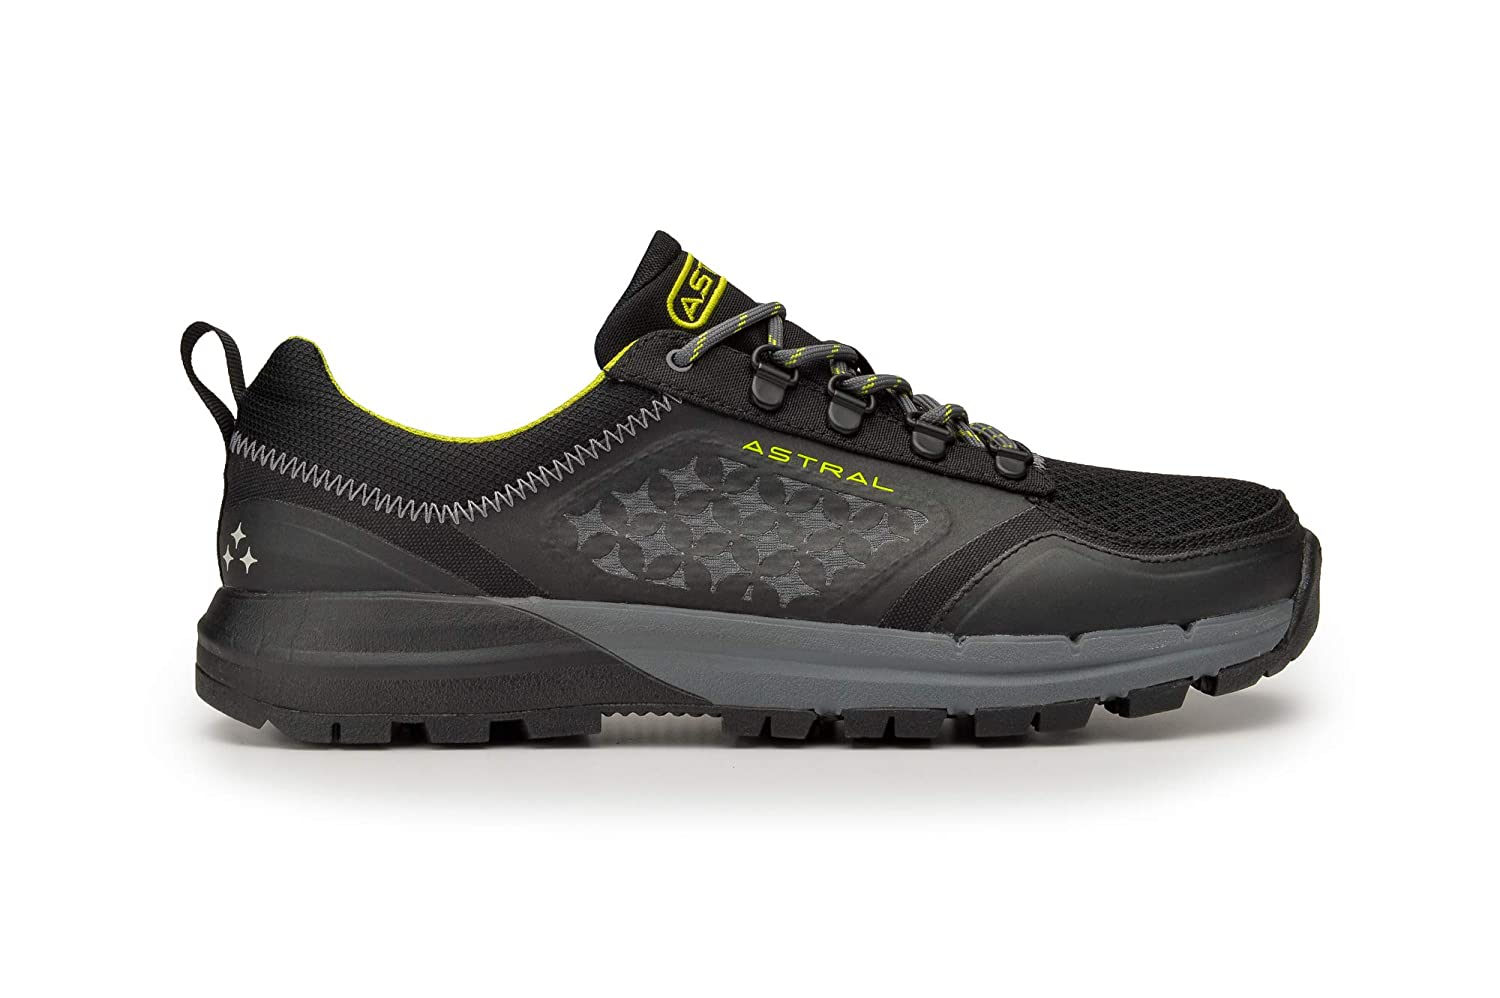 dfe787a48787 Amazon.com  Astral Men s TR1 Trek Minimalist Hiking Shoes